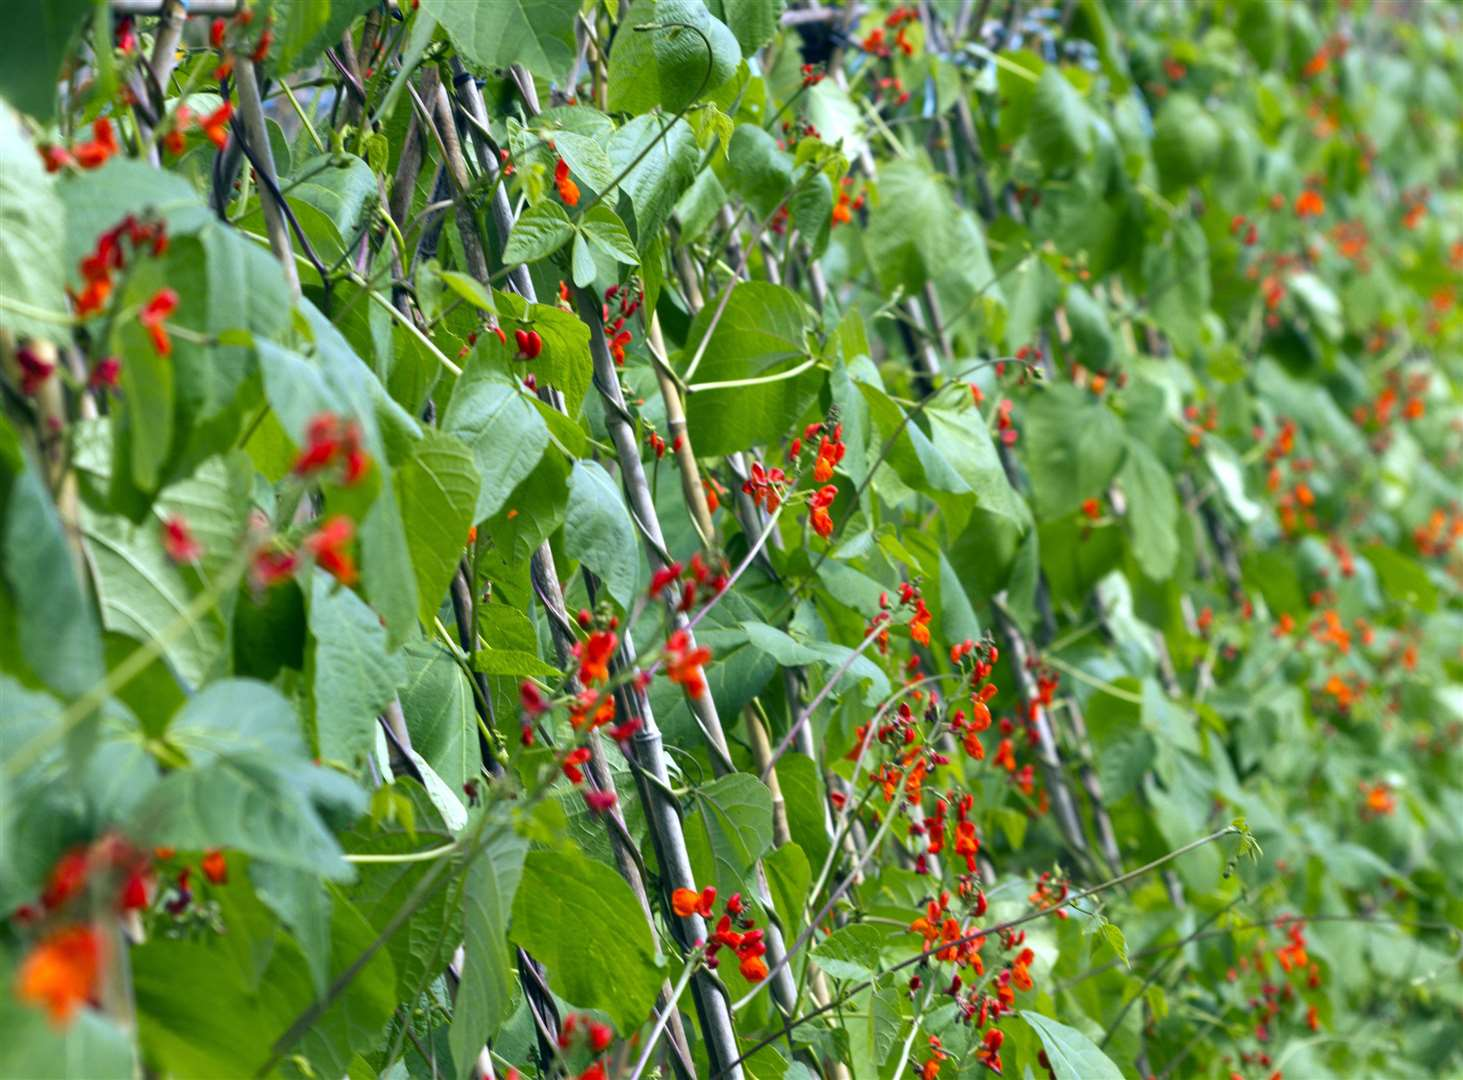 Children love sowing runner beans says Lee